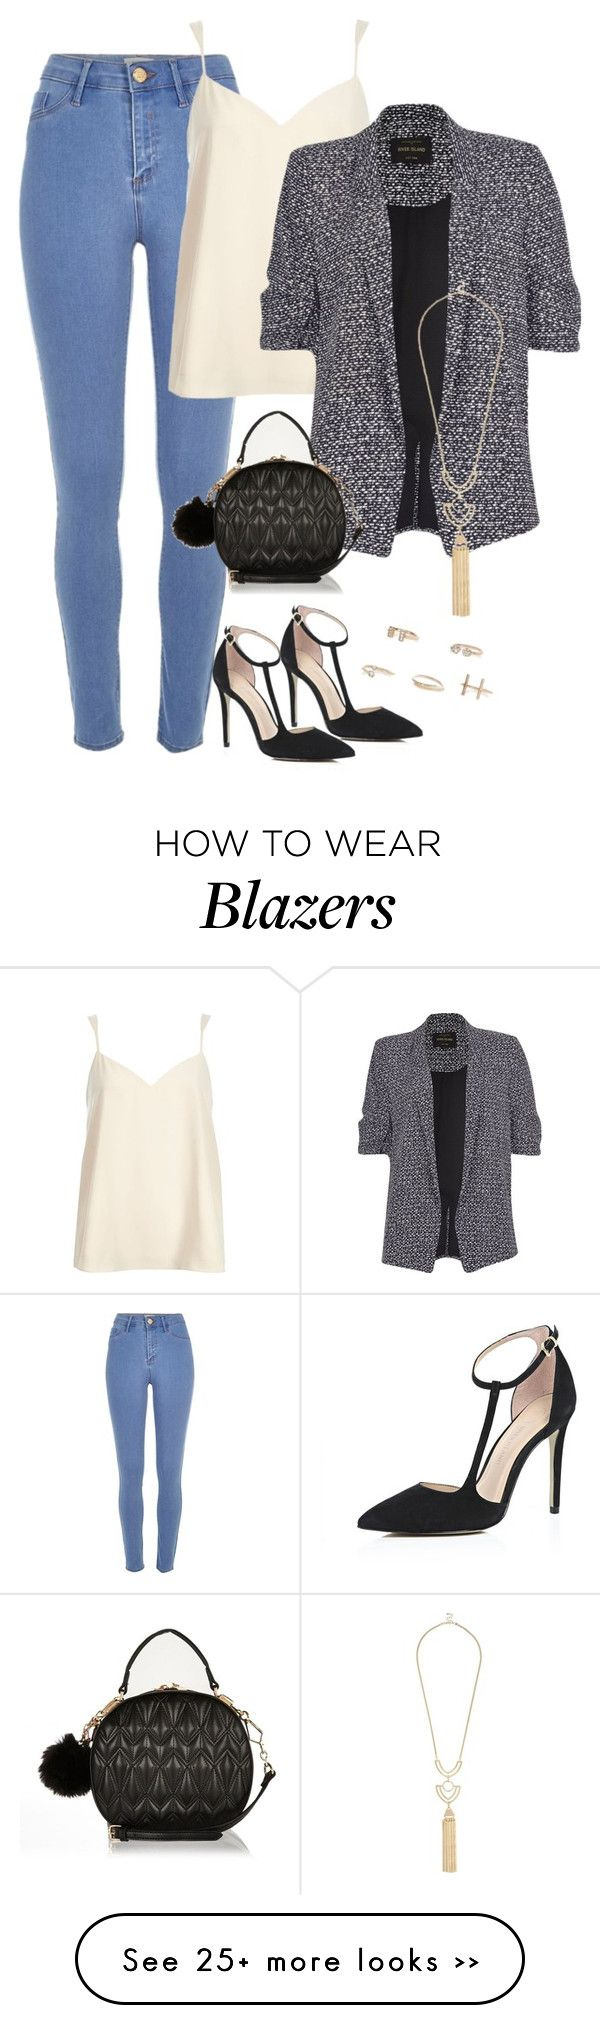 """Sophisticated look"" by alwayswearwhatyouwanttowear on Polyvore featuring River Island, outfit, outfits and fashionset"